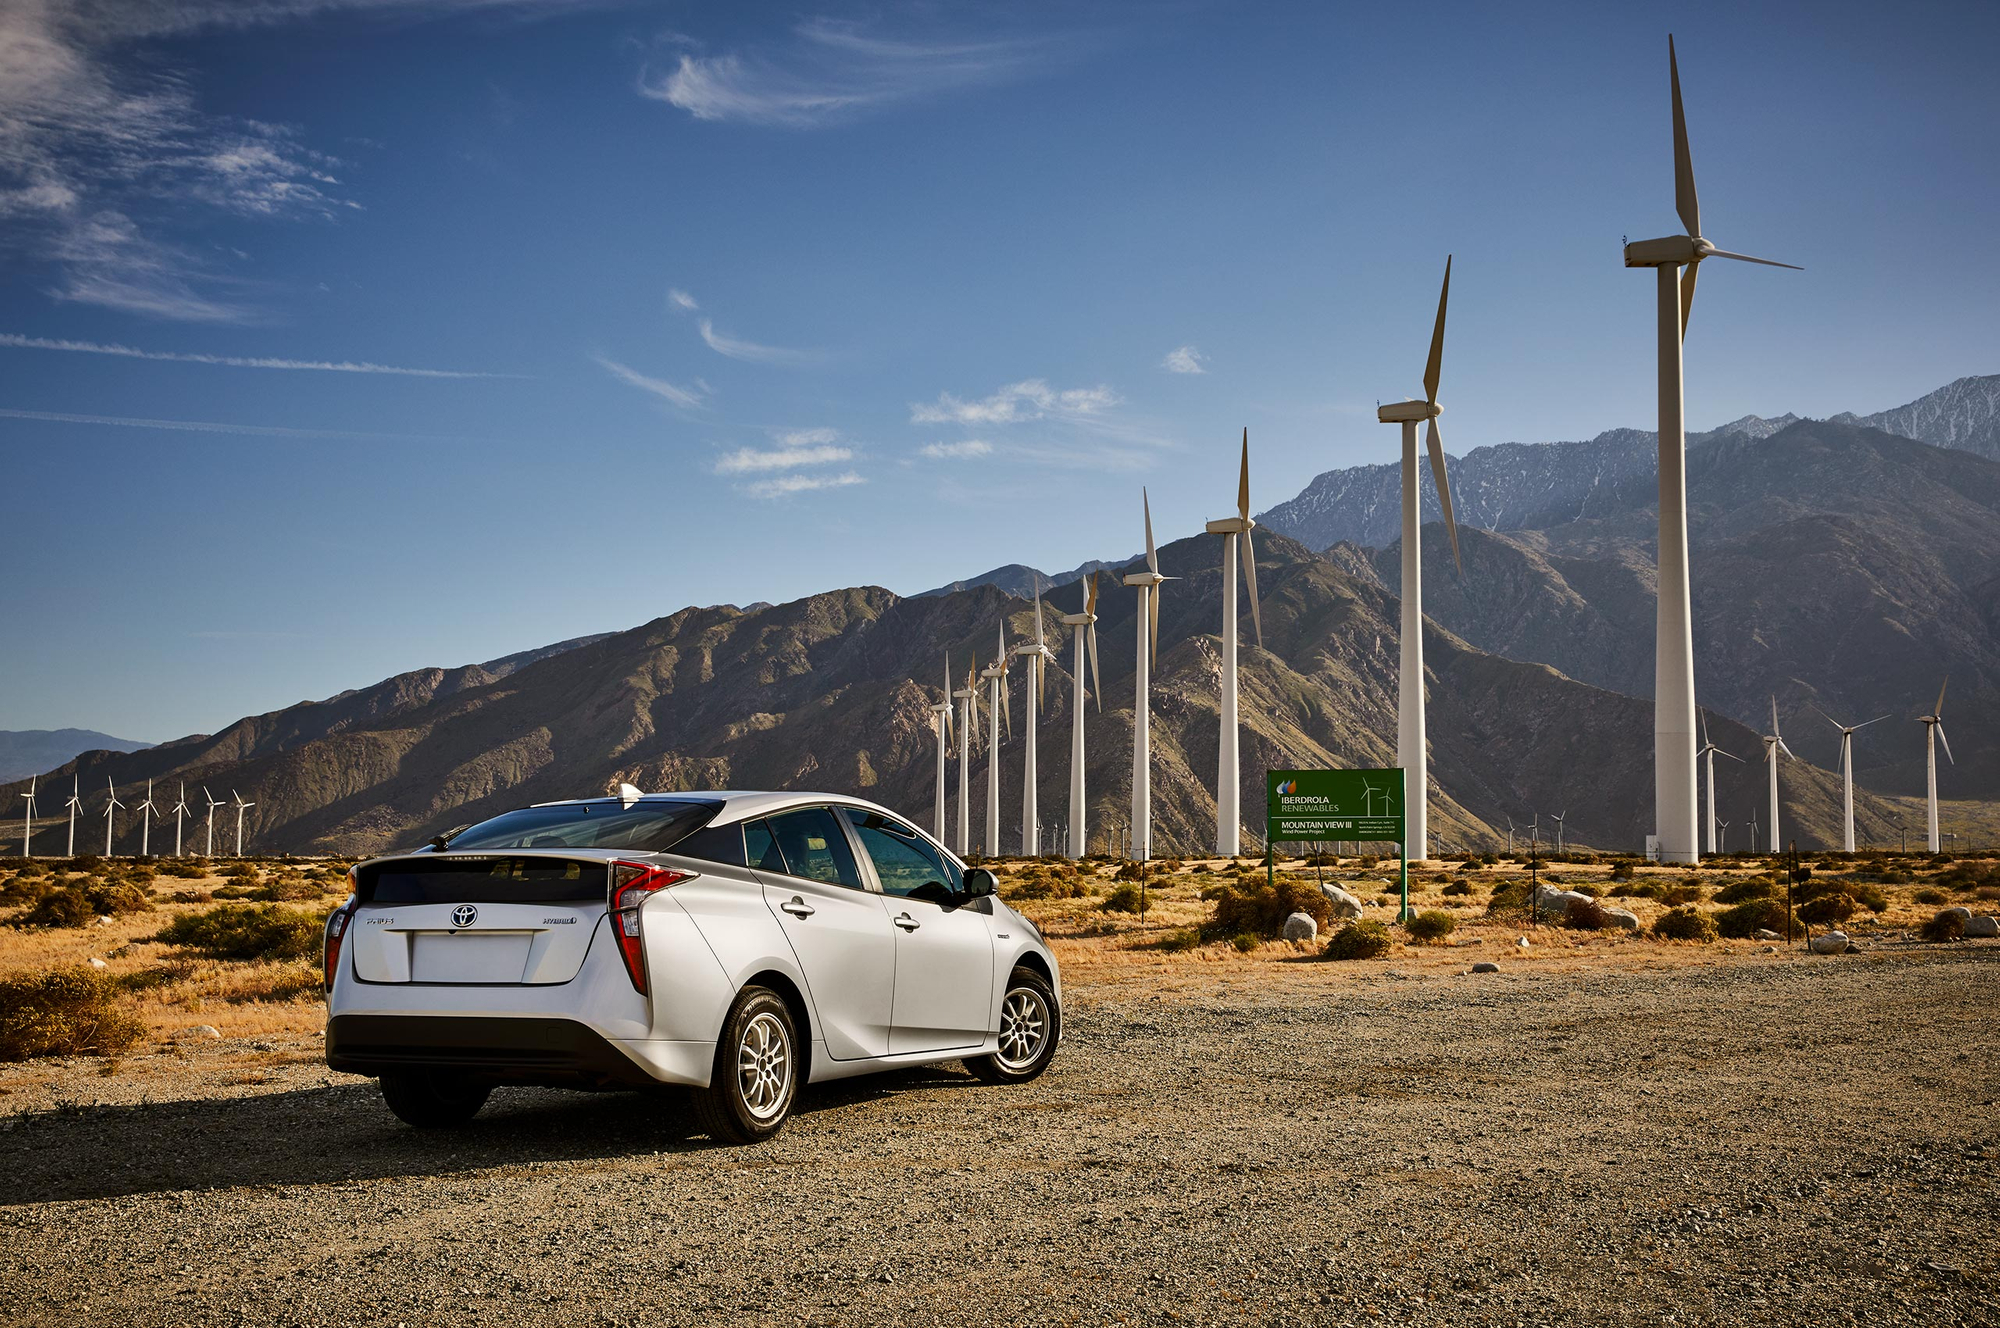 PRIUS_PS_DAY_1_REAR_WINDMILLS_063.jpg